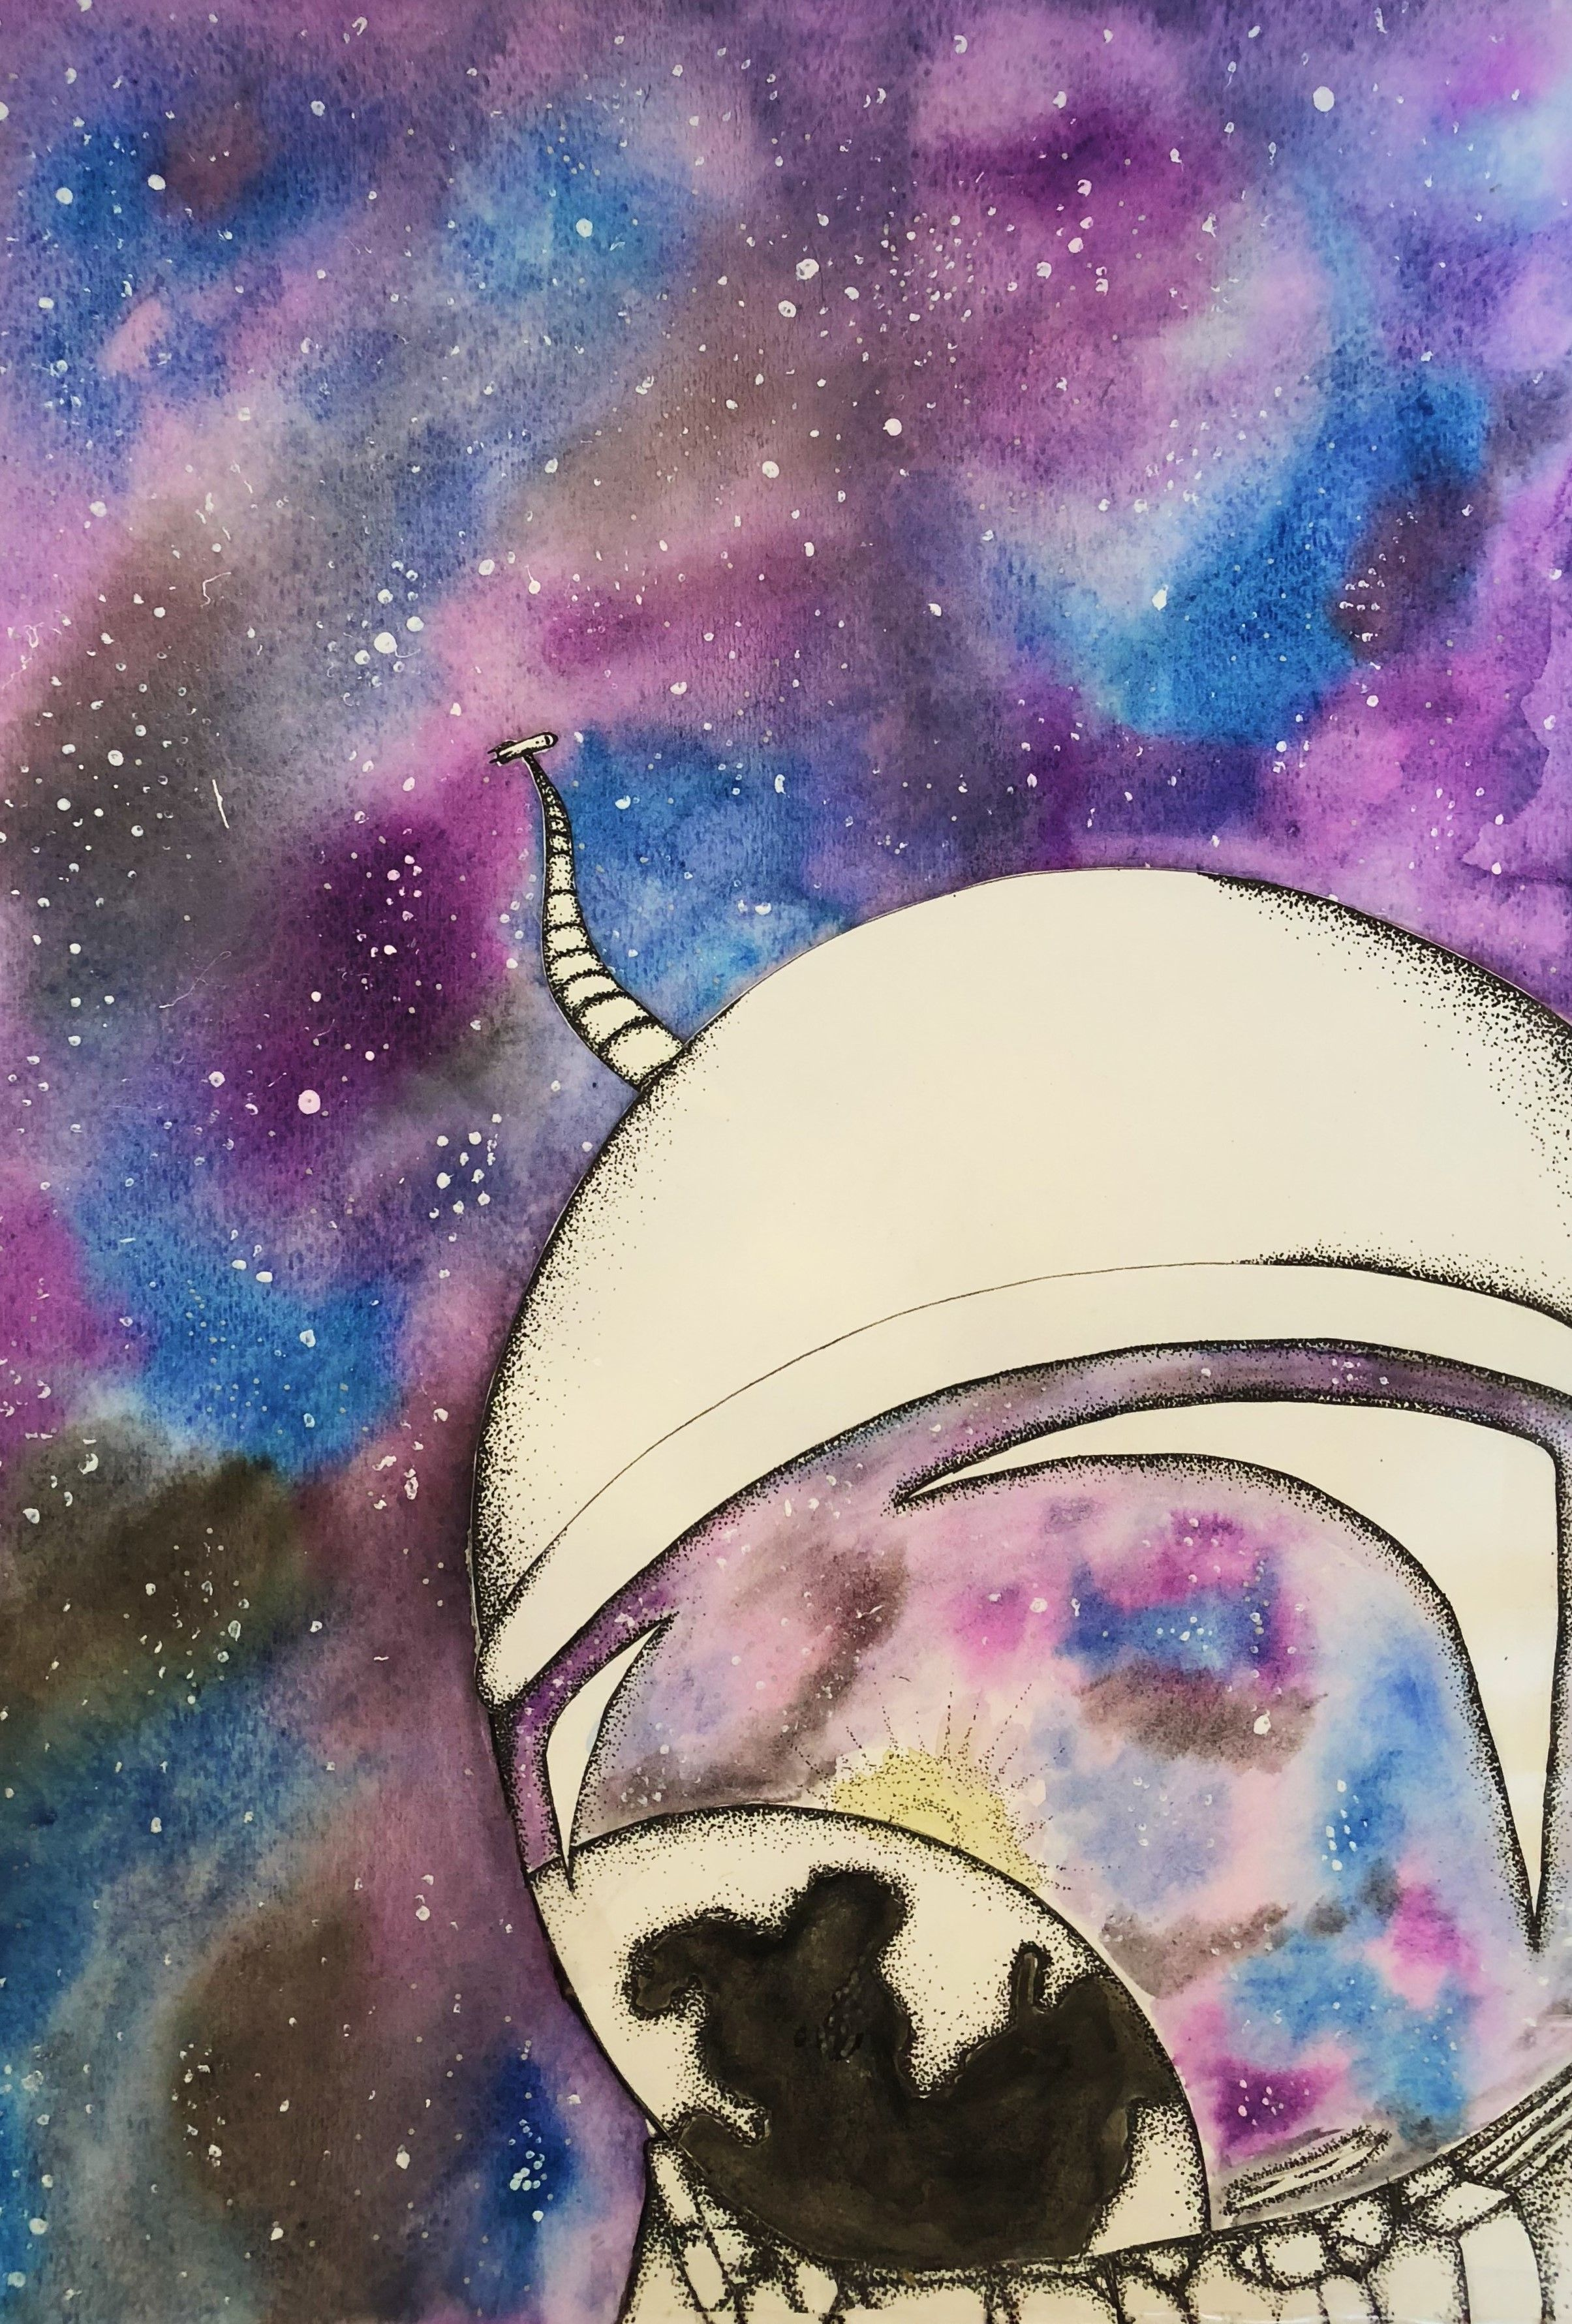 Astronaut In Space Painting Print Check Out These Cool Galaxy Paintings On This Etsy Shop For More Galaxy Painting Space Painting Painting Prints